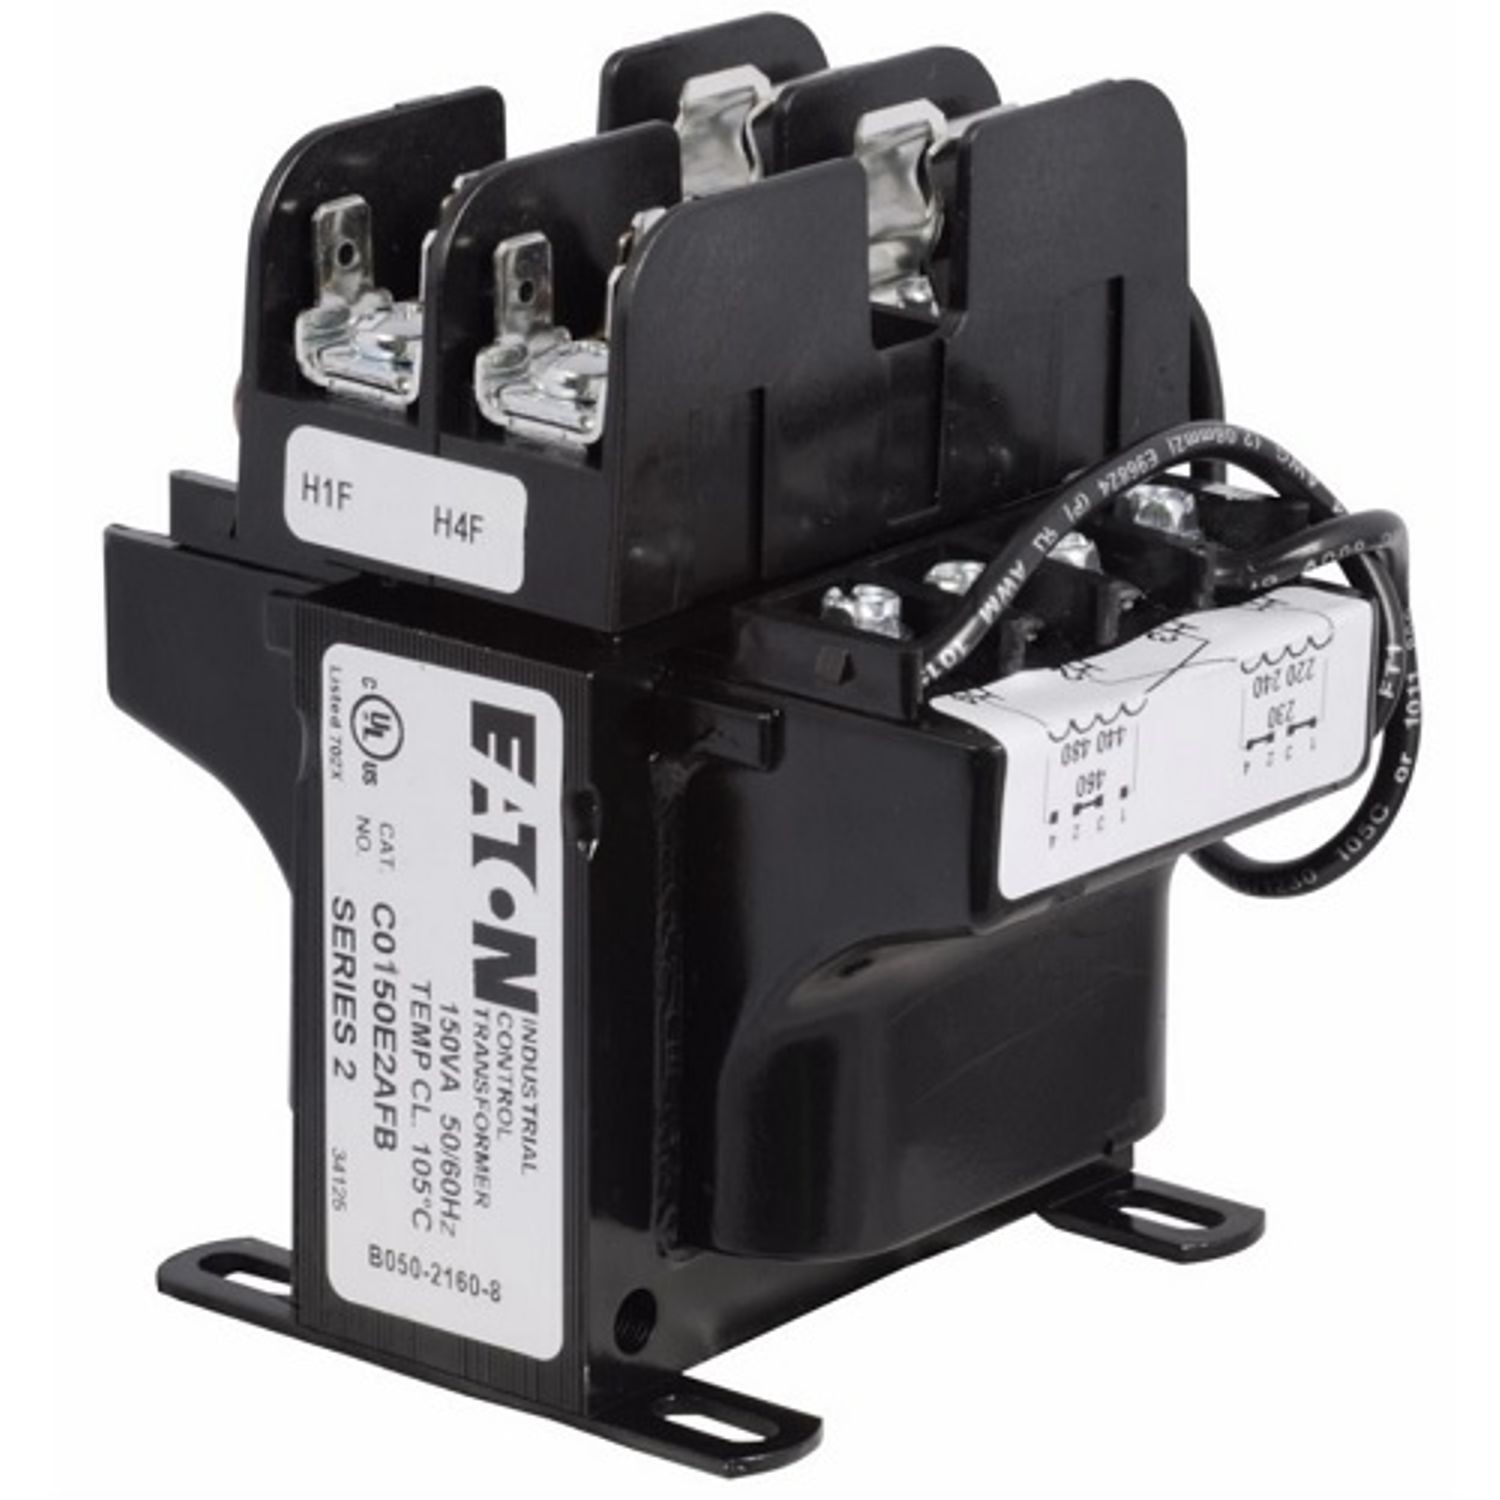 hight resolution of cutler hammer c0150e2afb industrial mte control transformer with primary fuse block 240 480 230 460 220 440 vac primary 120 115 110 v secondary 150 va